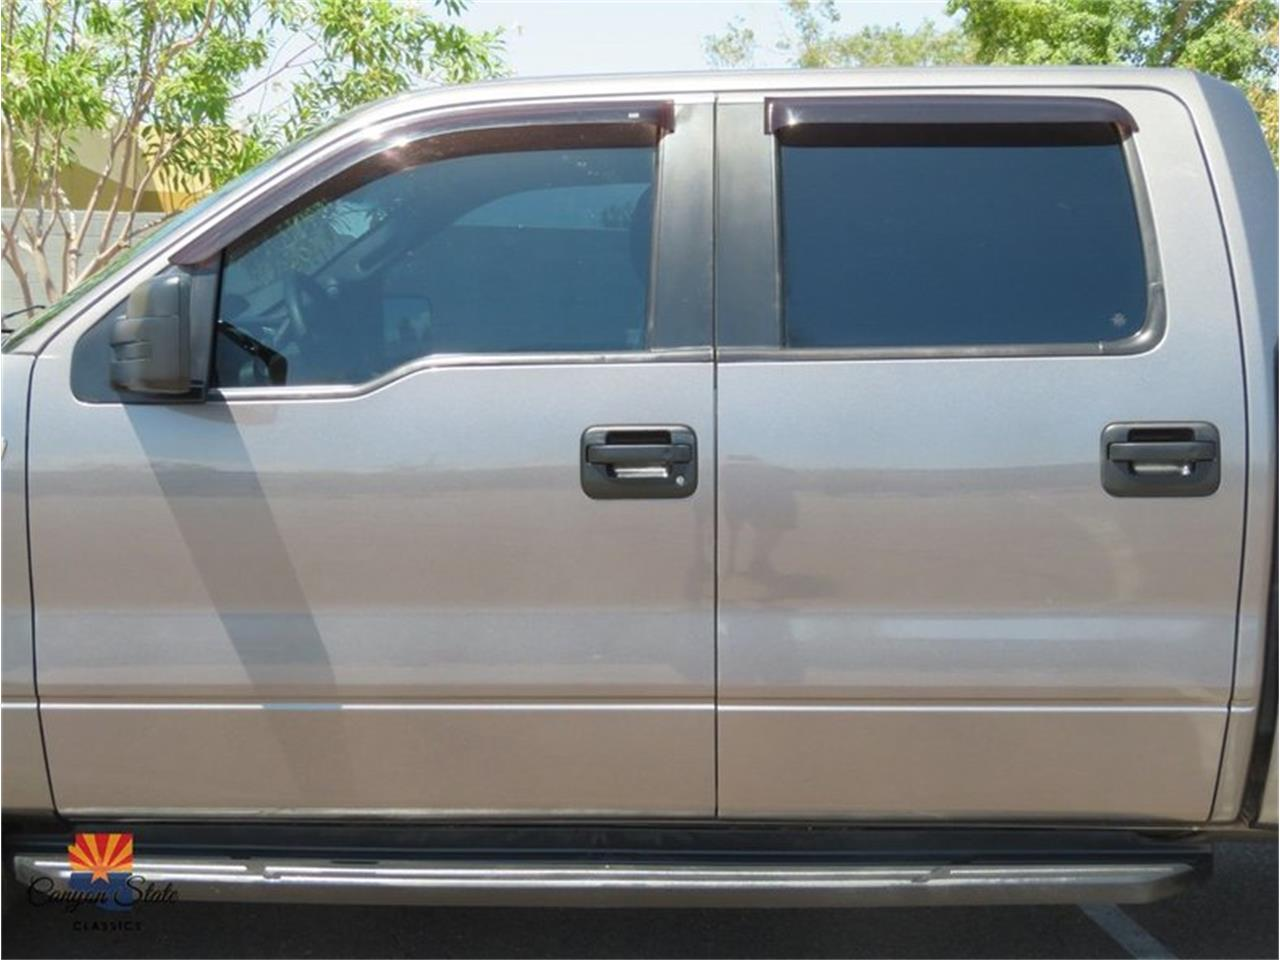 2014 Ford F150 for sale in Tempe, AZ – photo 16